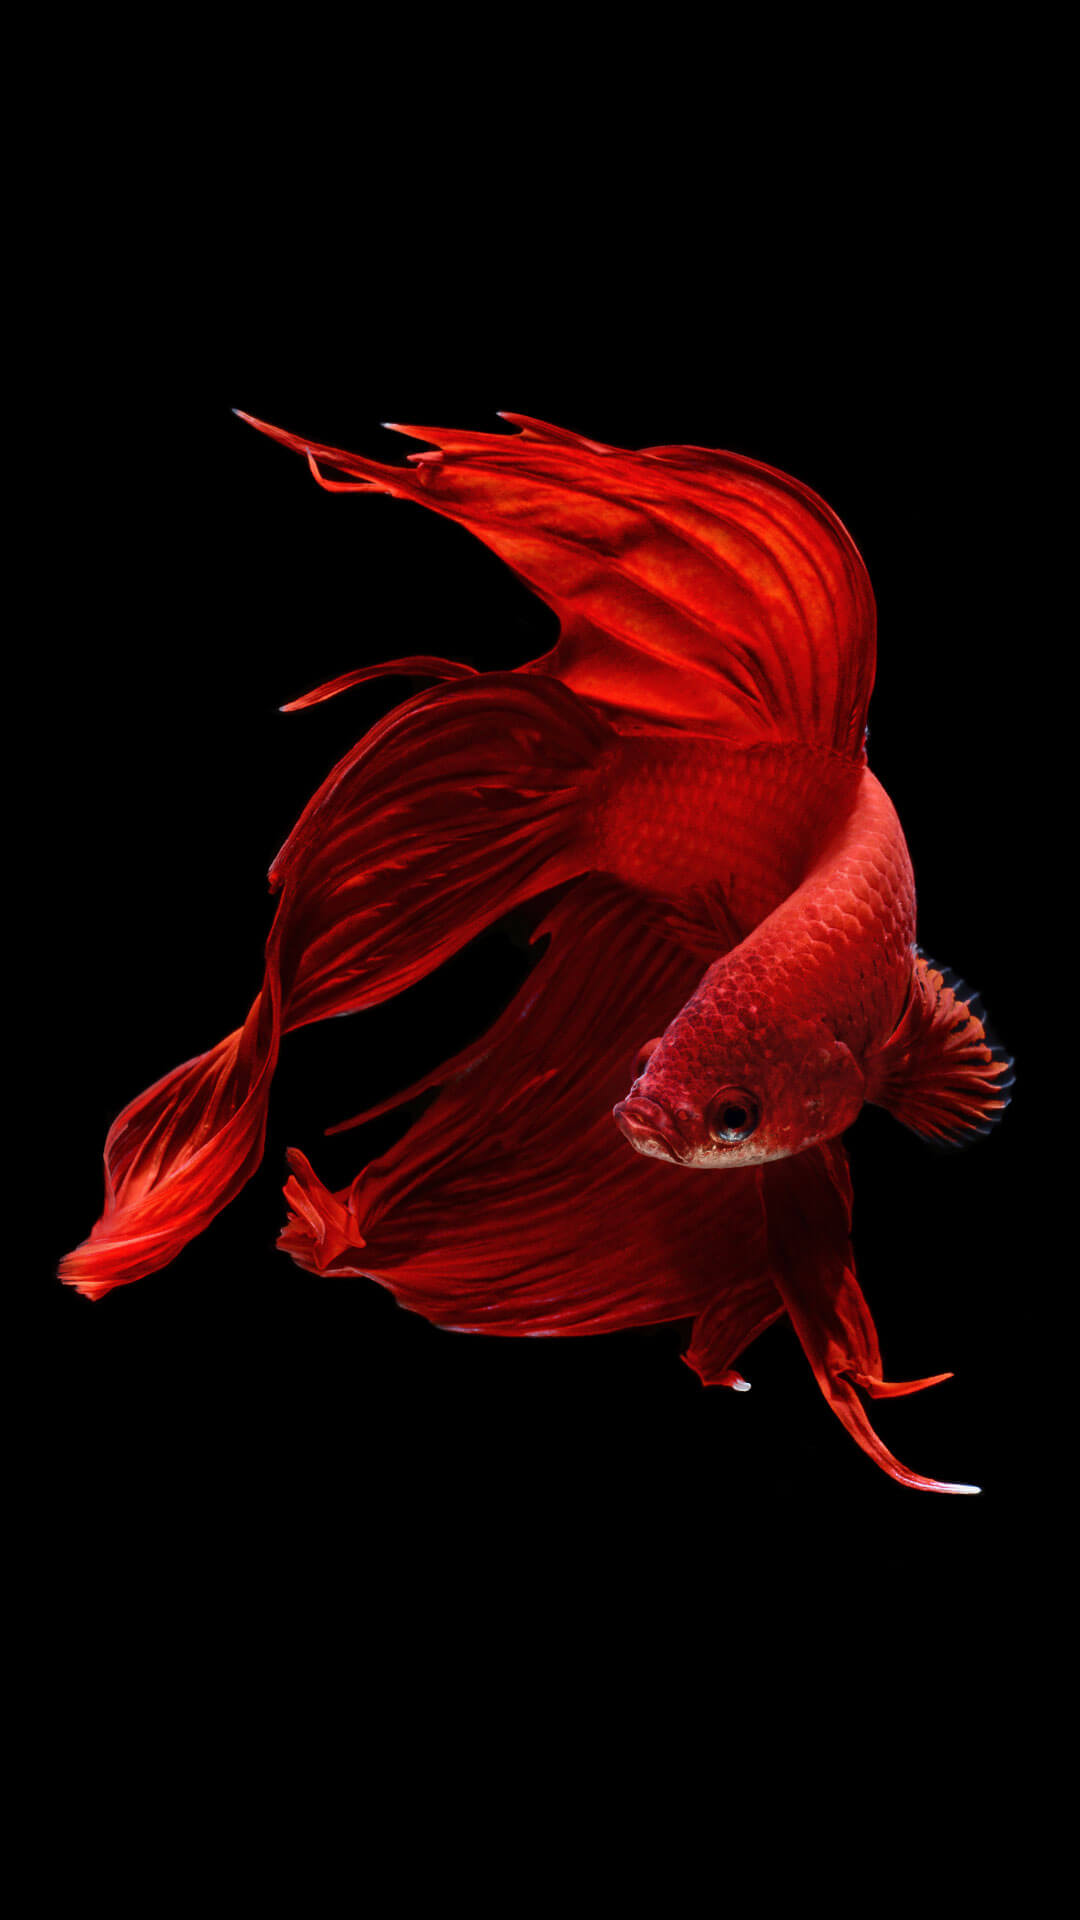 Wallpaper iphone cupang - Betta Fish Iphone 6 And Iphone 6s Wallpaper Iphone 5 Iphone 6